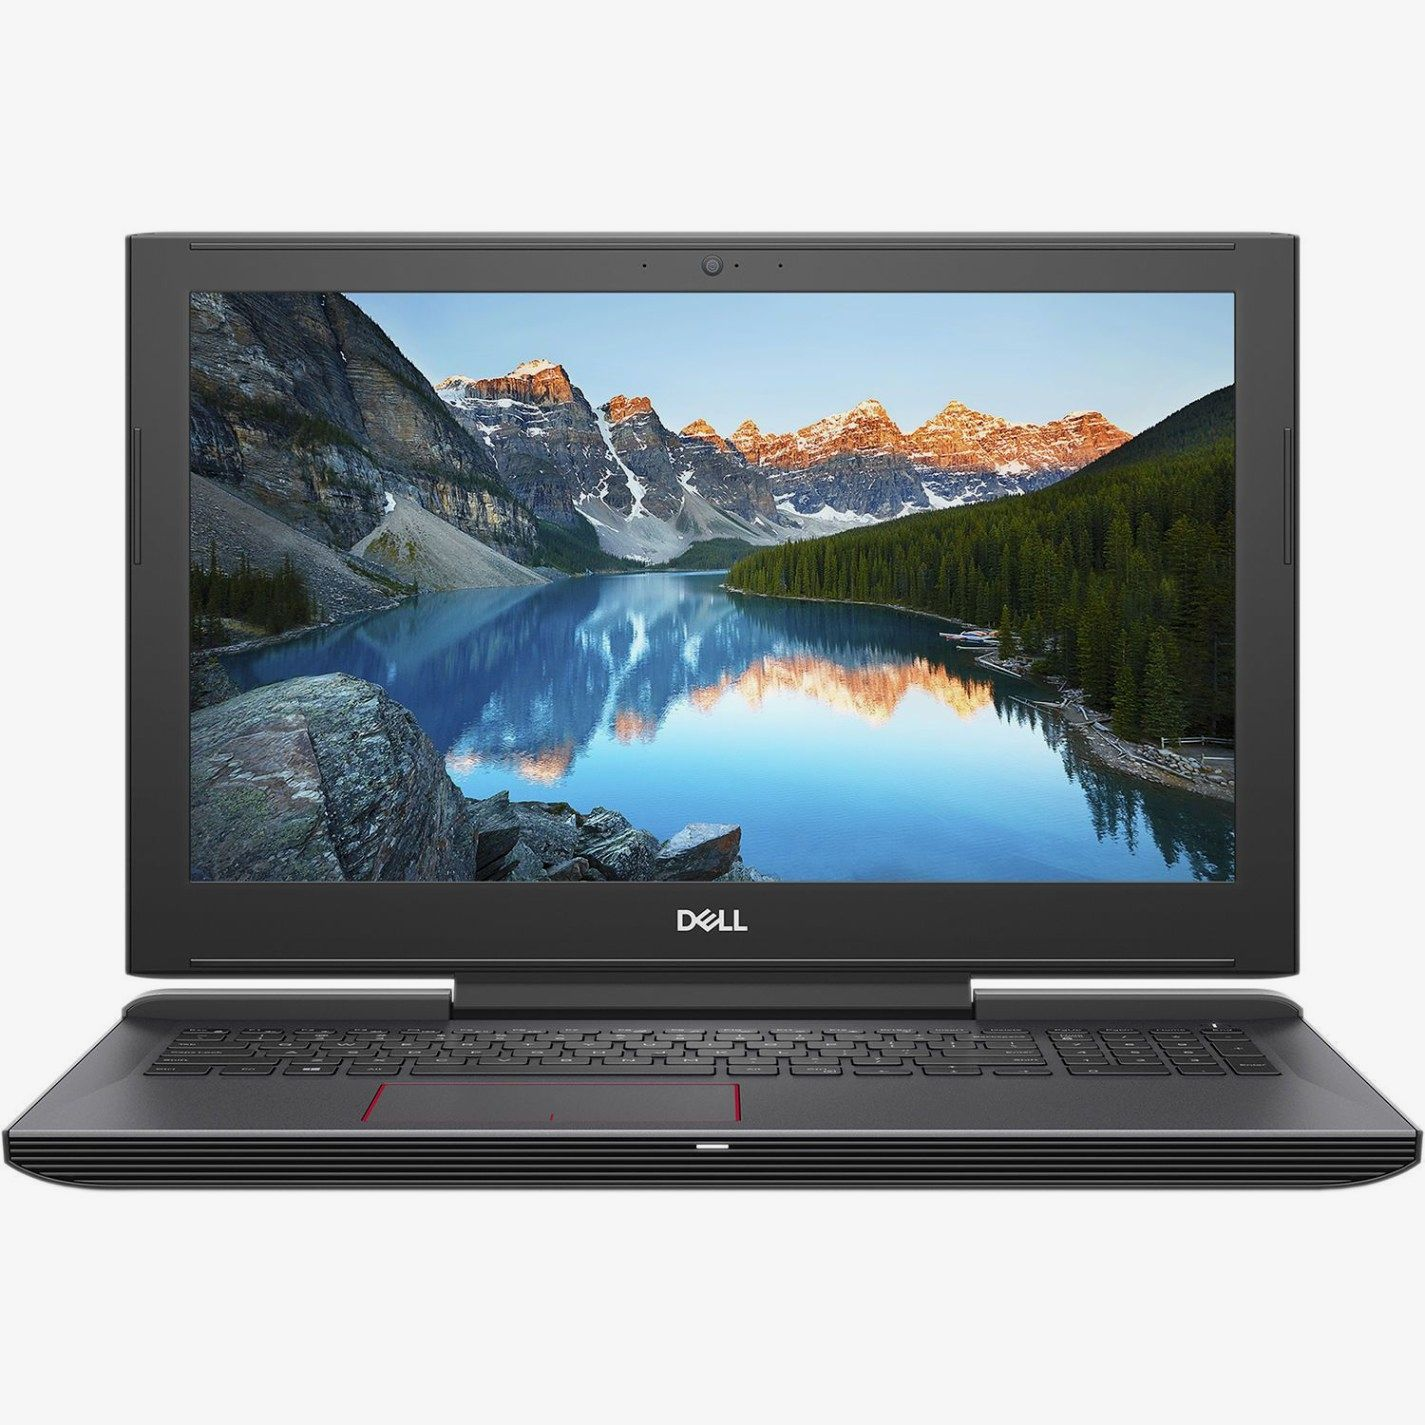 Owning The Latest Laptop Or Pc Products Suggests You Re Using The Very Best Laptop Or Computer Available For The Job Aged Lap Gaming Laptops Dell Inspiron Ssd